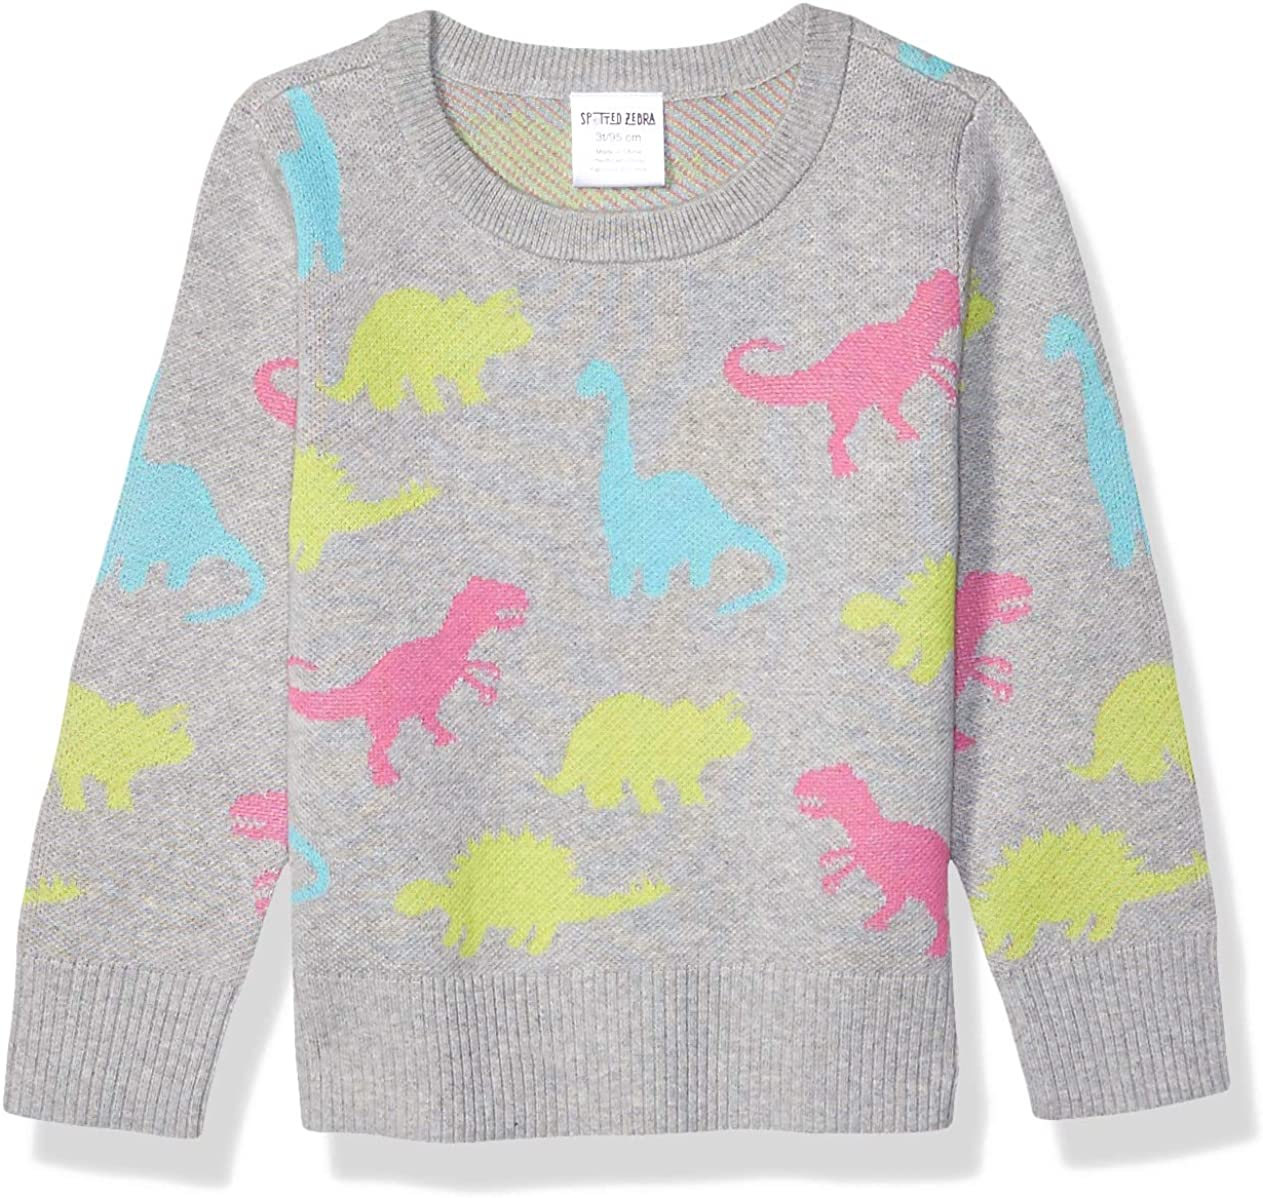 Brand Spotted Zebra Girls Toddler /& Kids Pullover Crew Sweaters